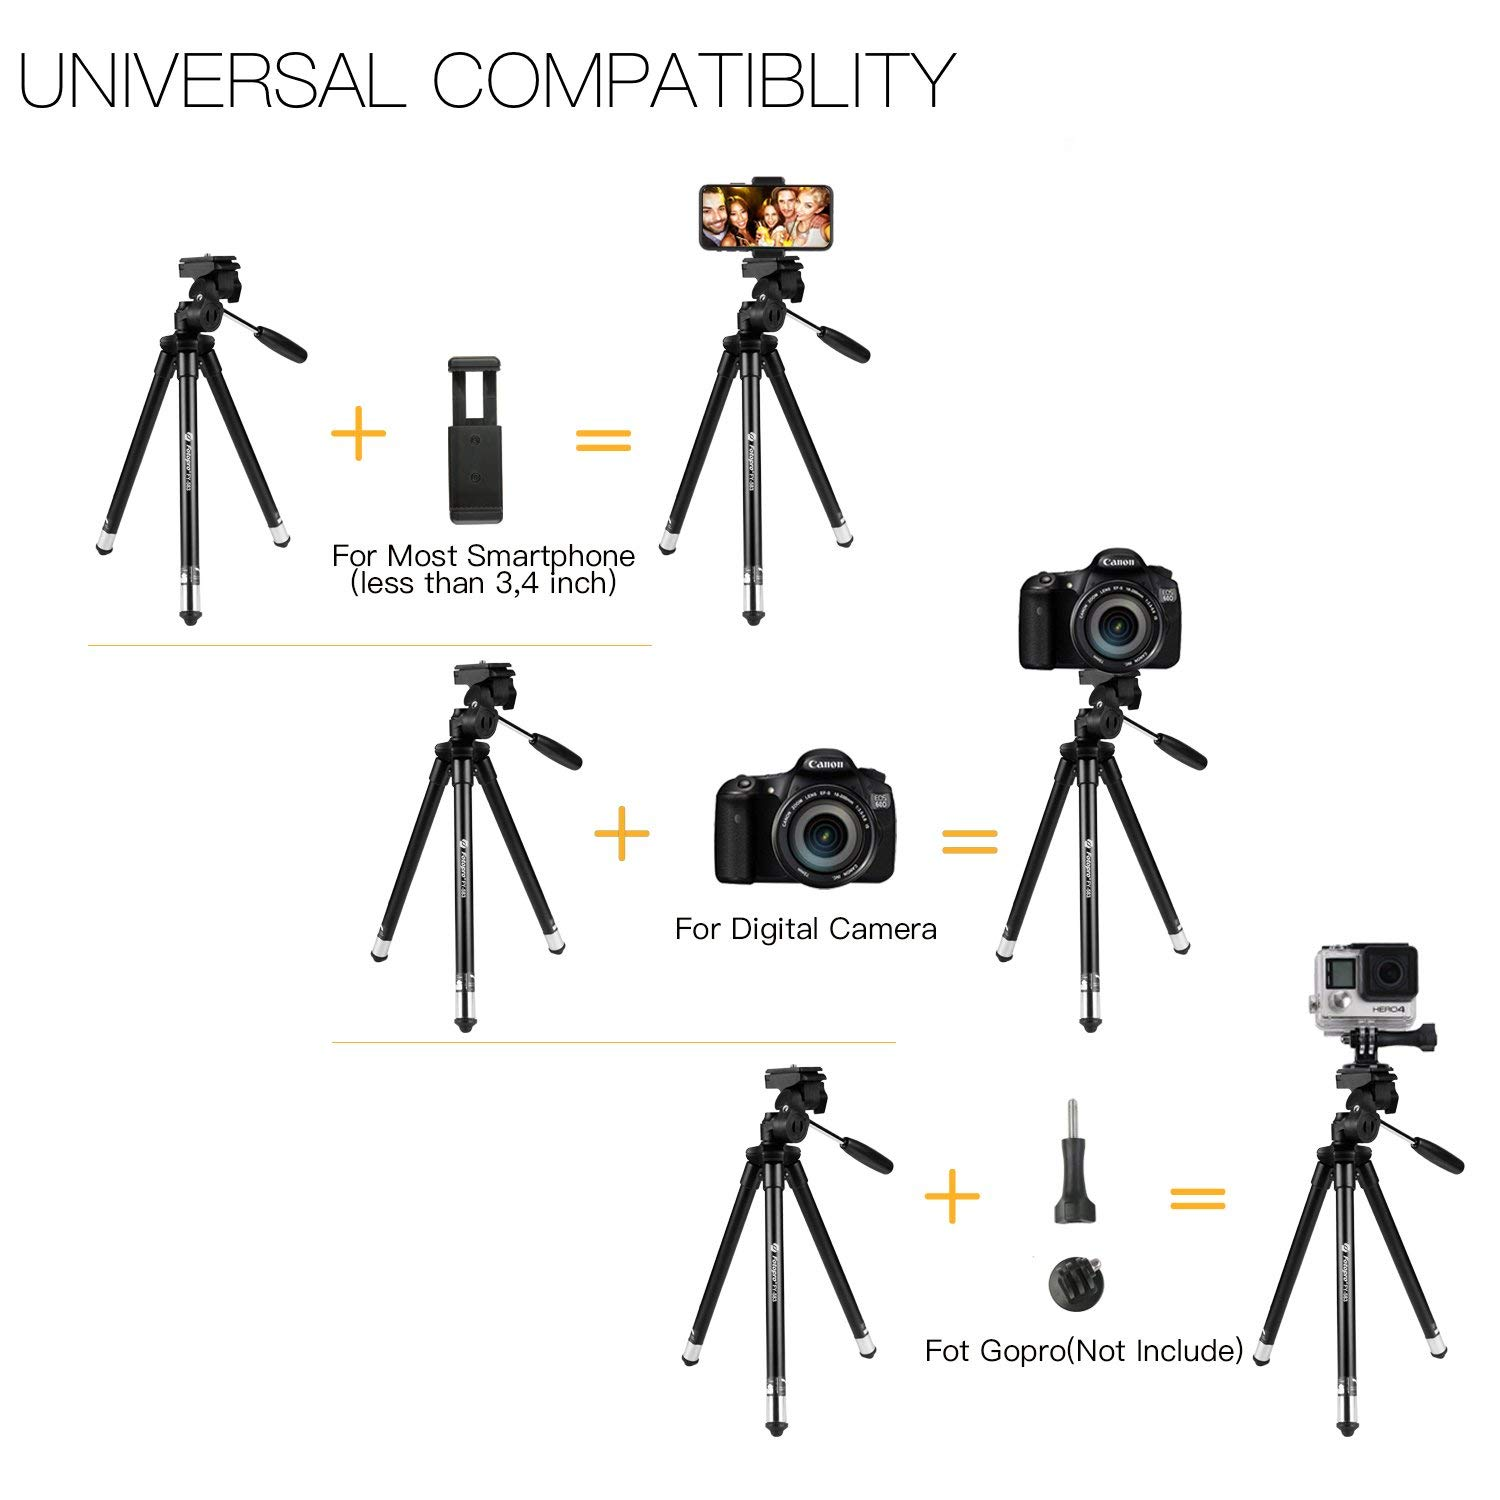 Fotopro Phone Tripod, 39 5 Inch Aluminum Camera Tripod with Bluetooth  Remote Control and Bag for iPhone 8/Plus,Samsung, Huawei,Gopro  6/5/4,Nikon,Canon